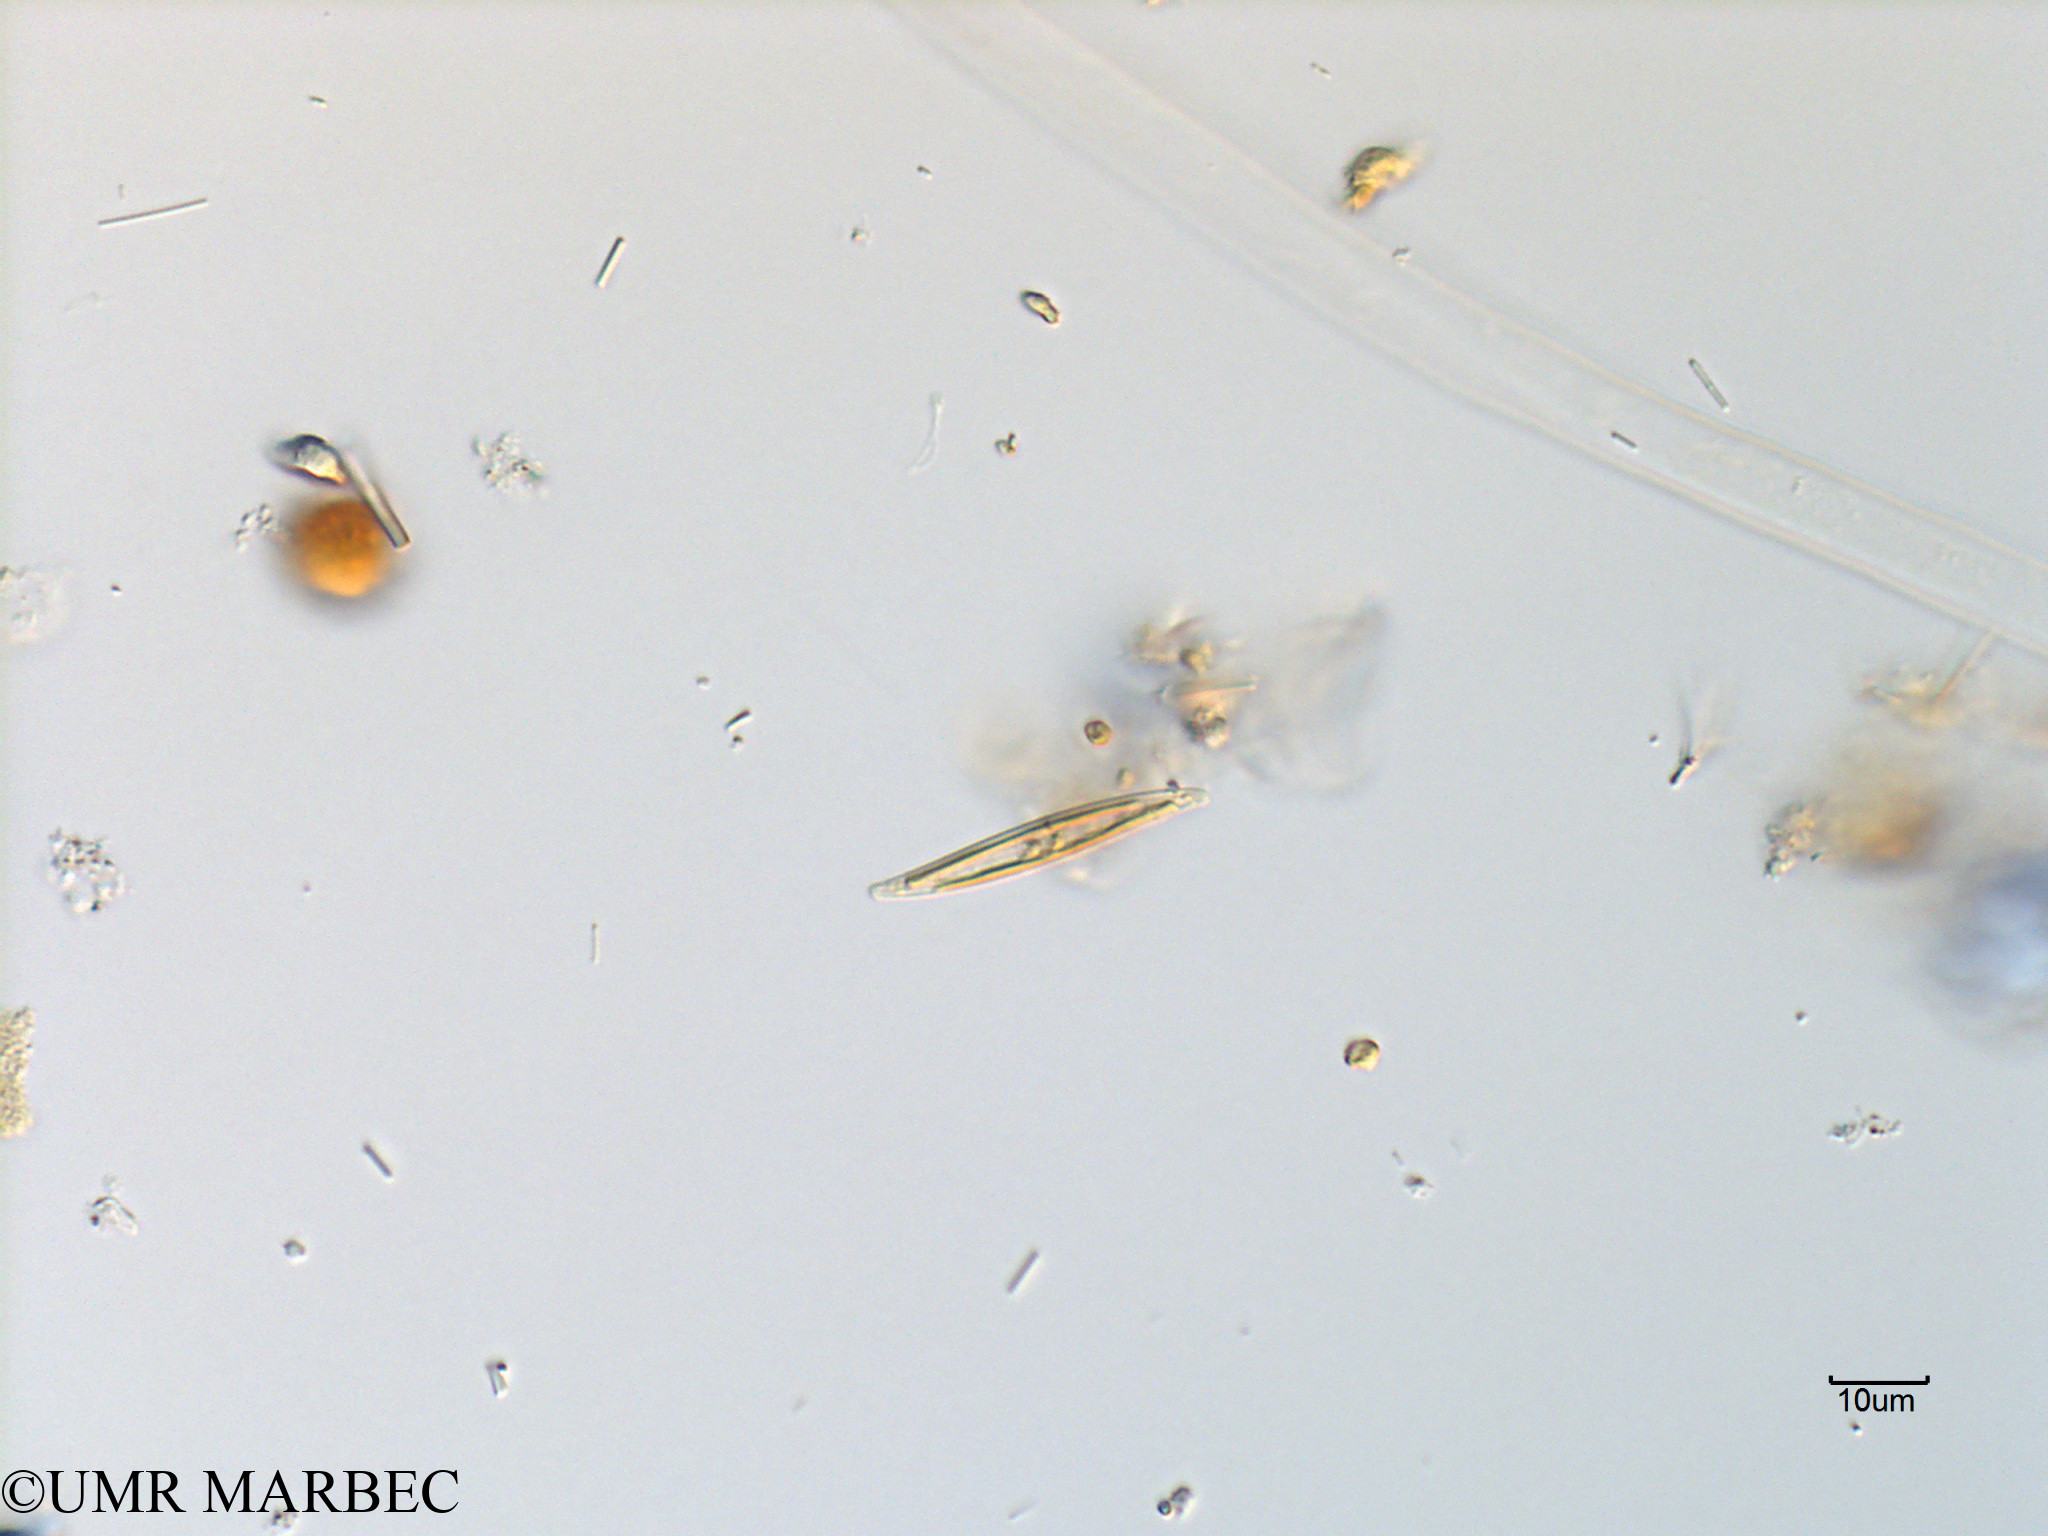 phyto/Scattered_Islands/mayotte_lagoon/SIREME May 2016/Pleurosigma sp11 (MAY11_cf pleurosigma).tif(copy).jpg